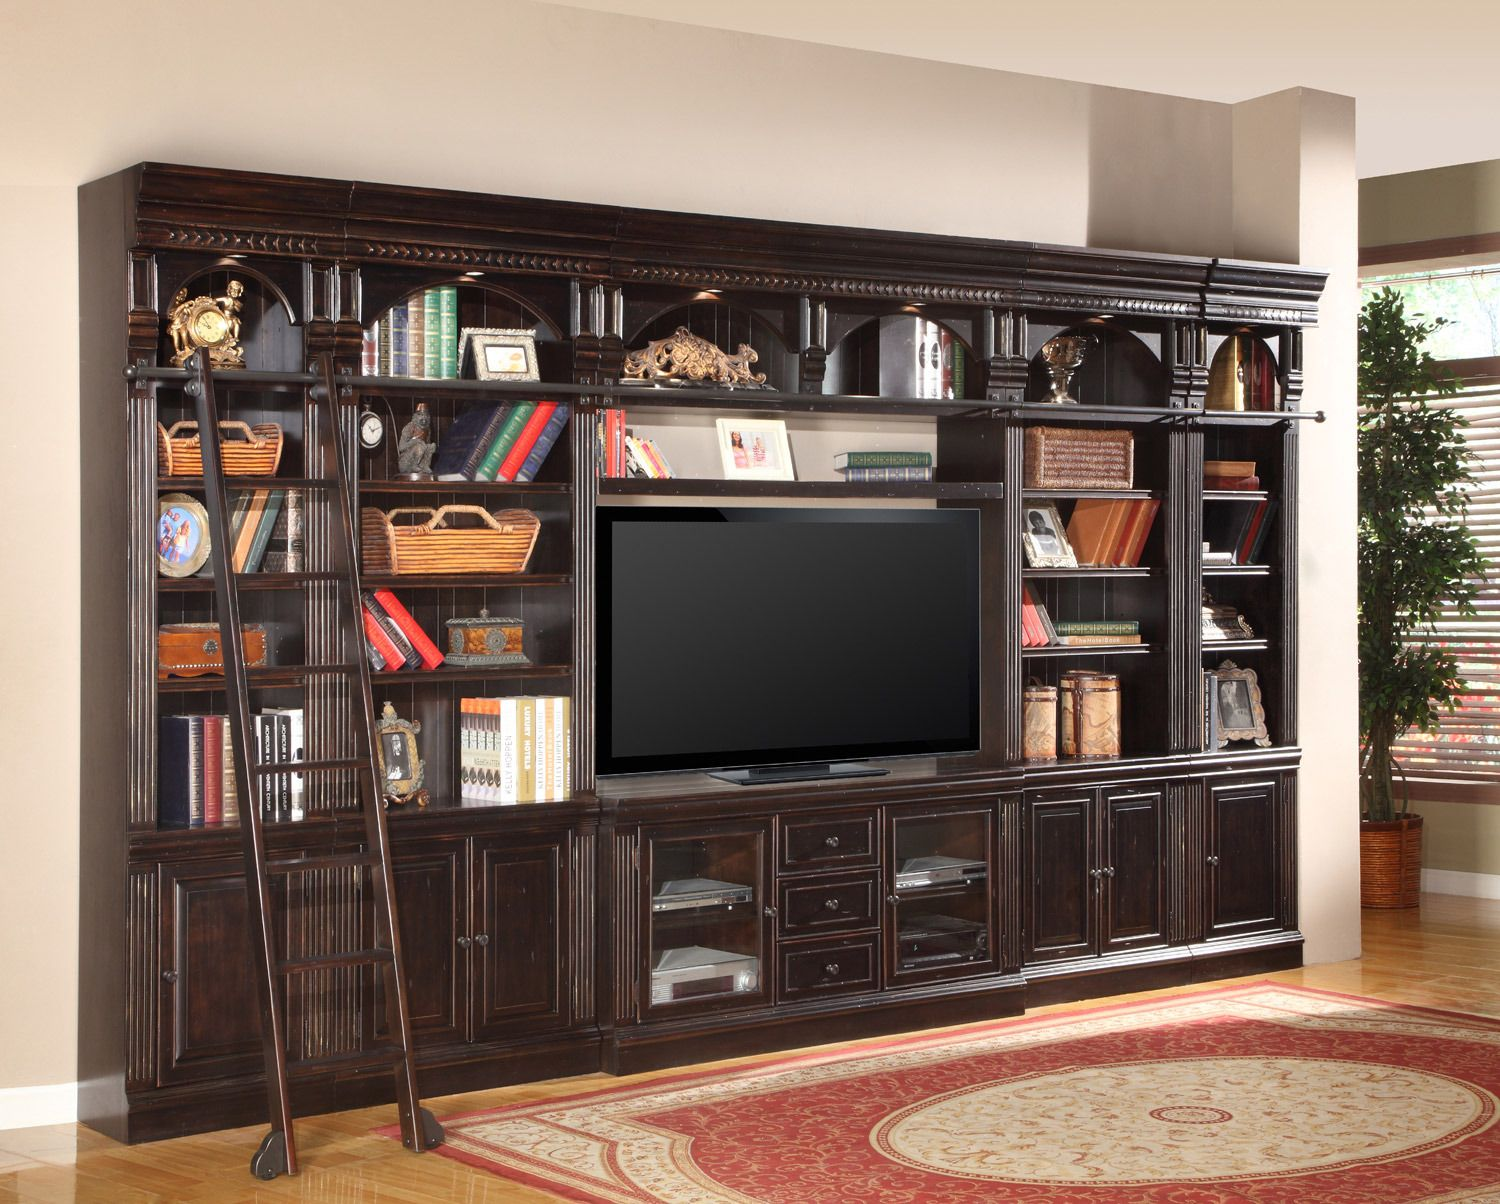 6 Pc Entertainment Center Wall | Parker House Furniture | Home Gallery  Stores